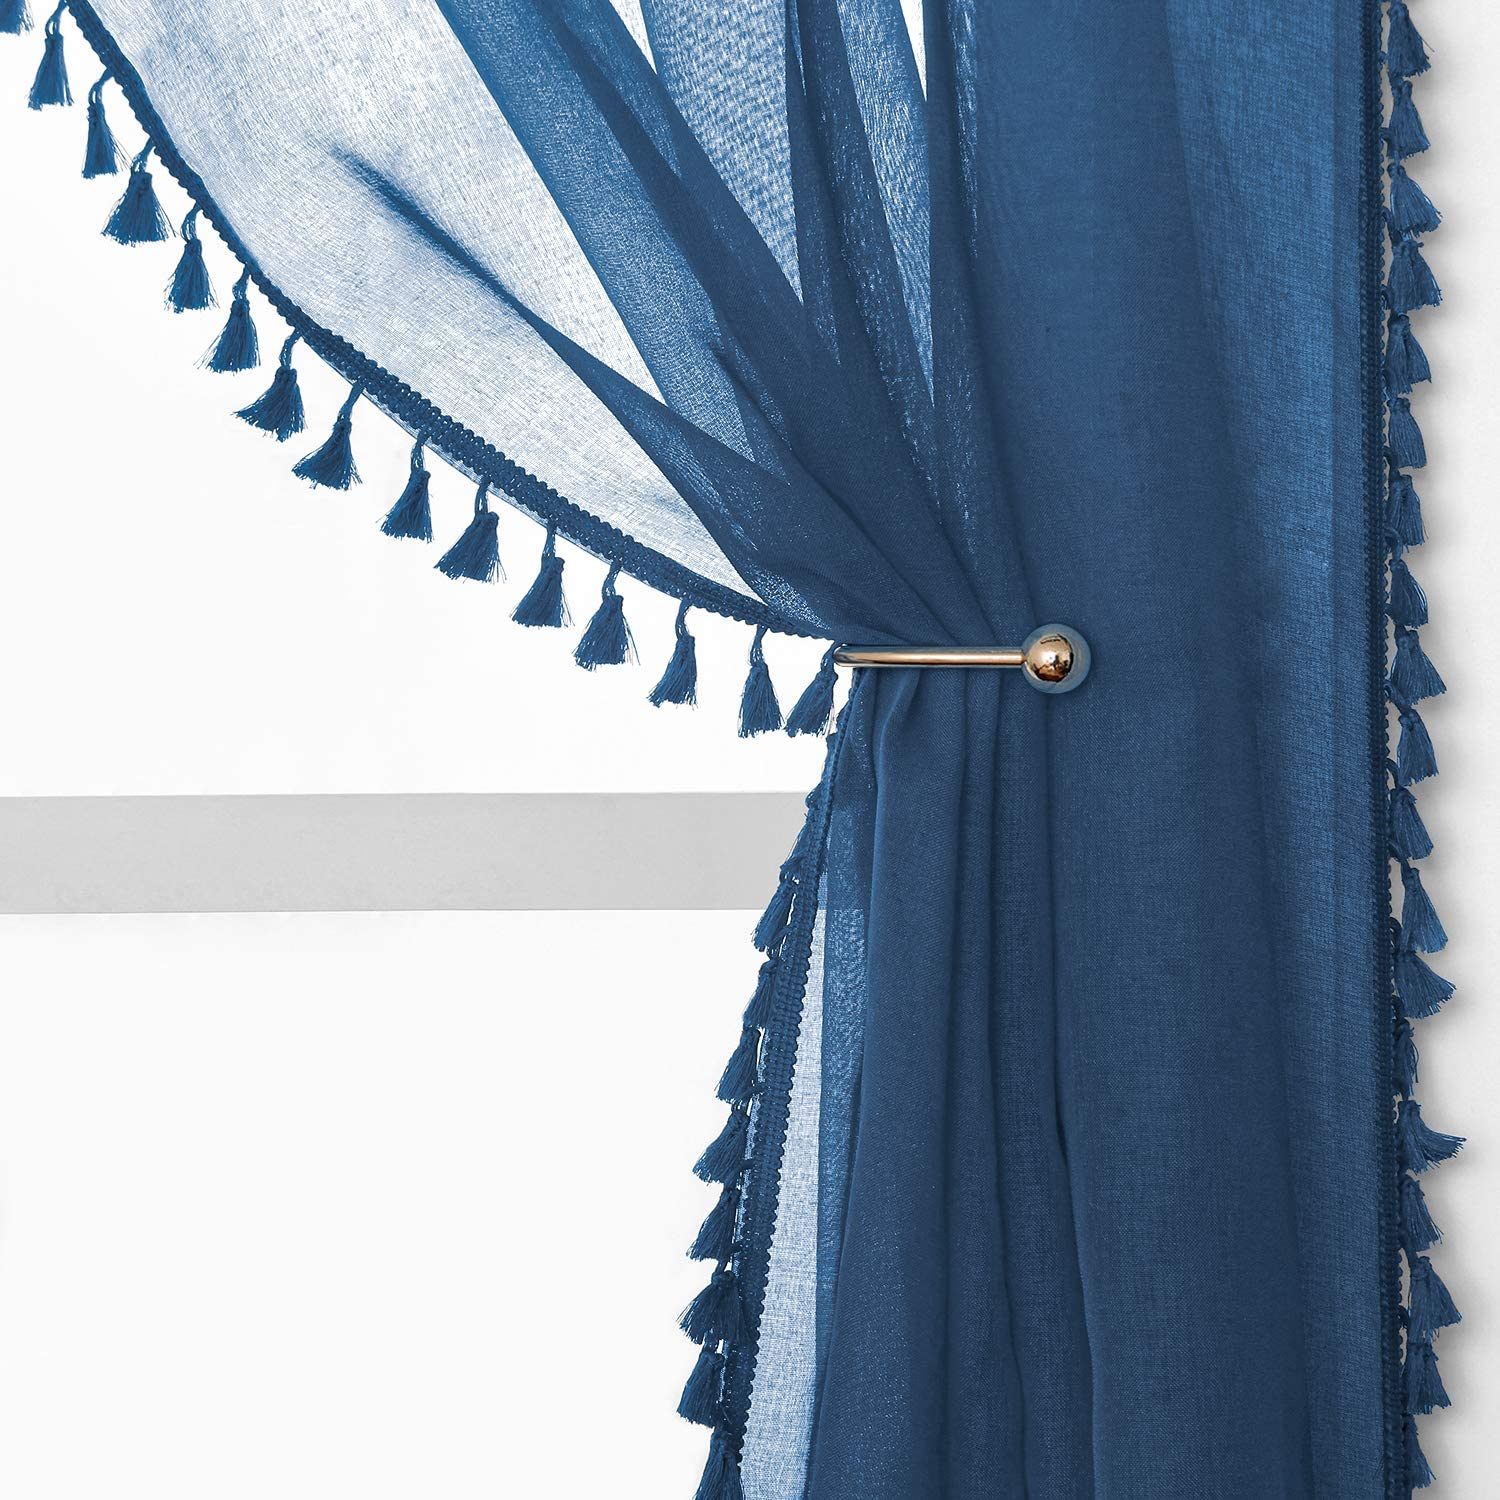 YoungsTex Linen Recommended Look Sheer Curtains Top Grommet Voile 67% OFF of fixed price - Tassels